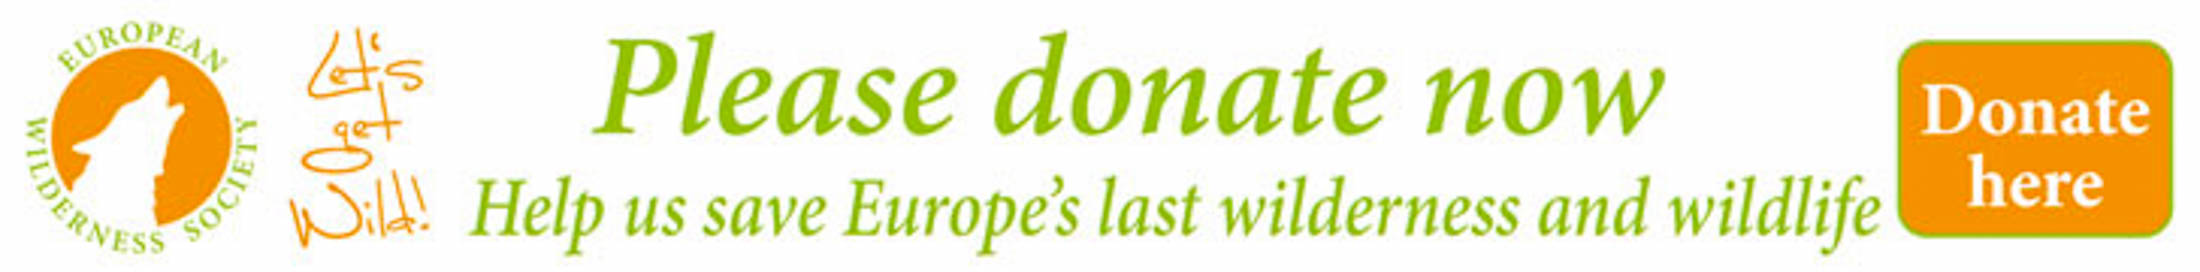 Banner_Donate_Now_728x90.png - © European Wilderness Society CC BY-NC-ND 4.0